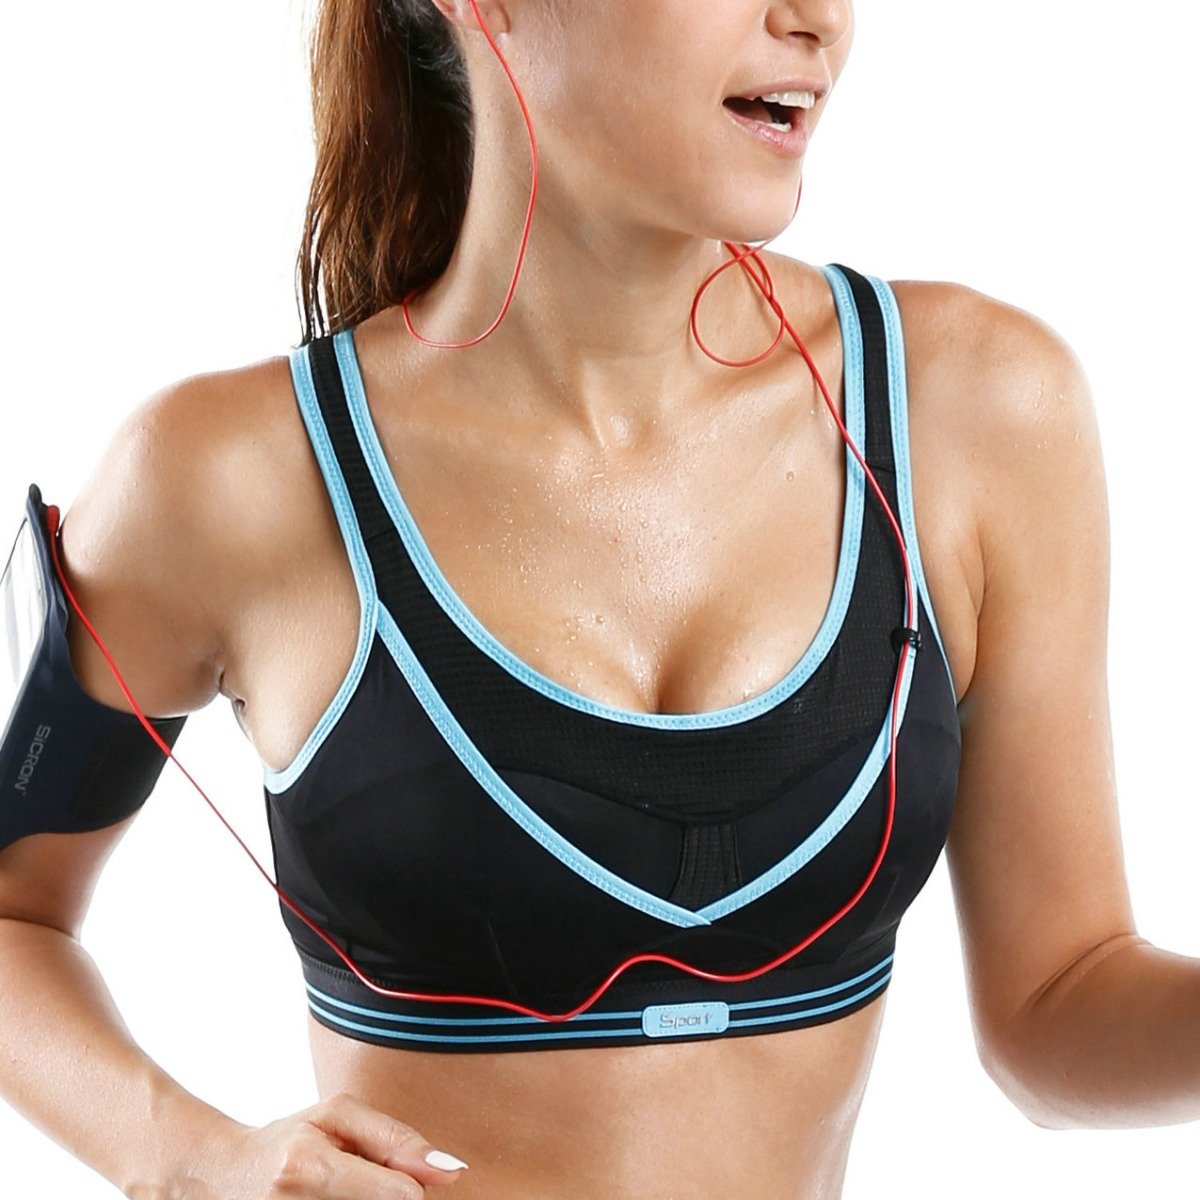 SYROKAN Women's High Impact Wireless Support Cool Racerback Gym Active Non Padded Sports Bra